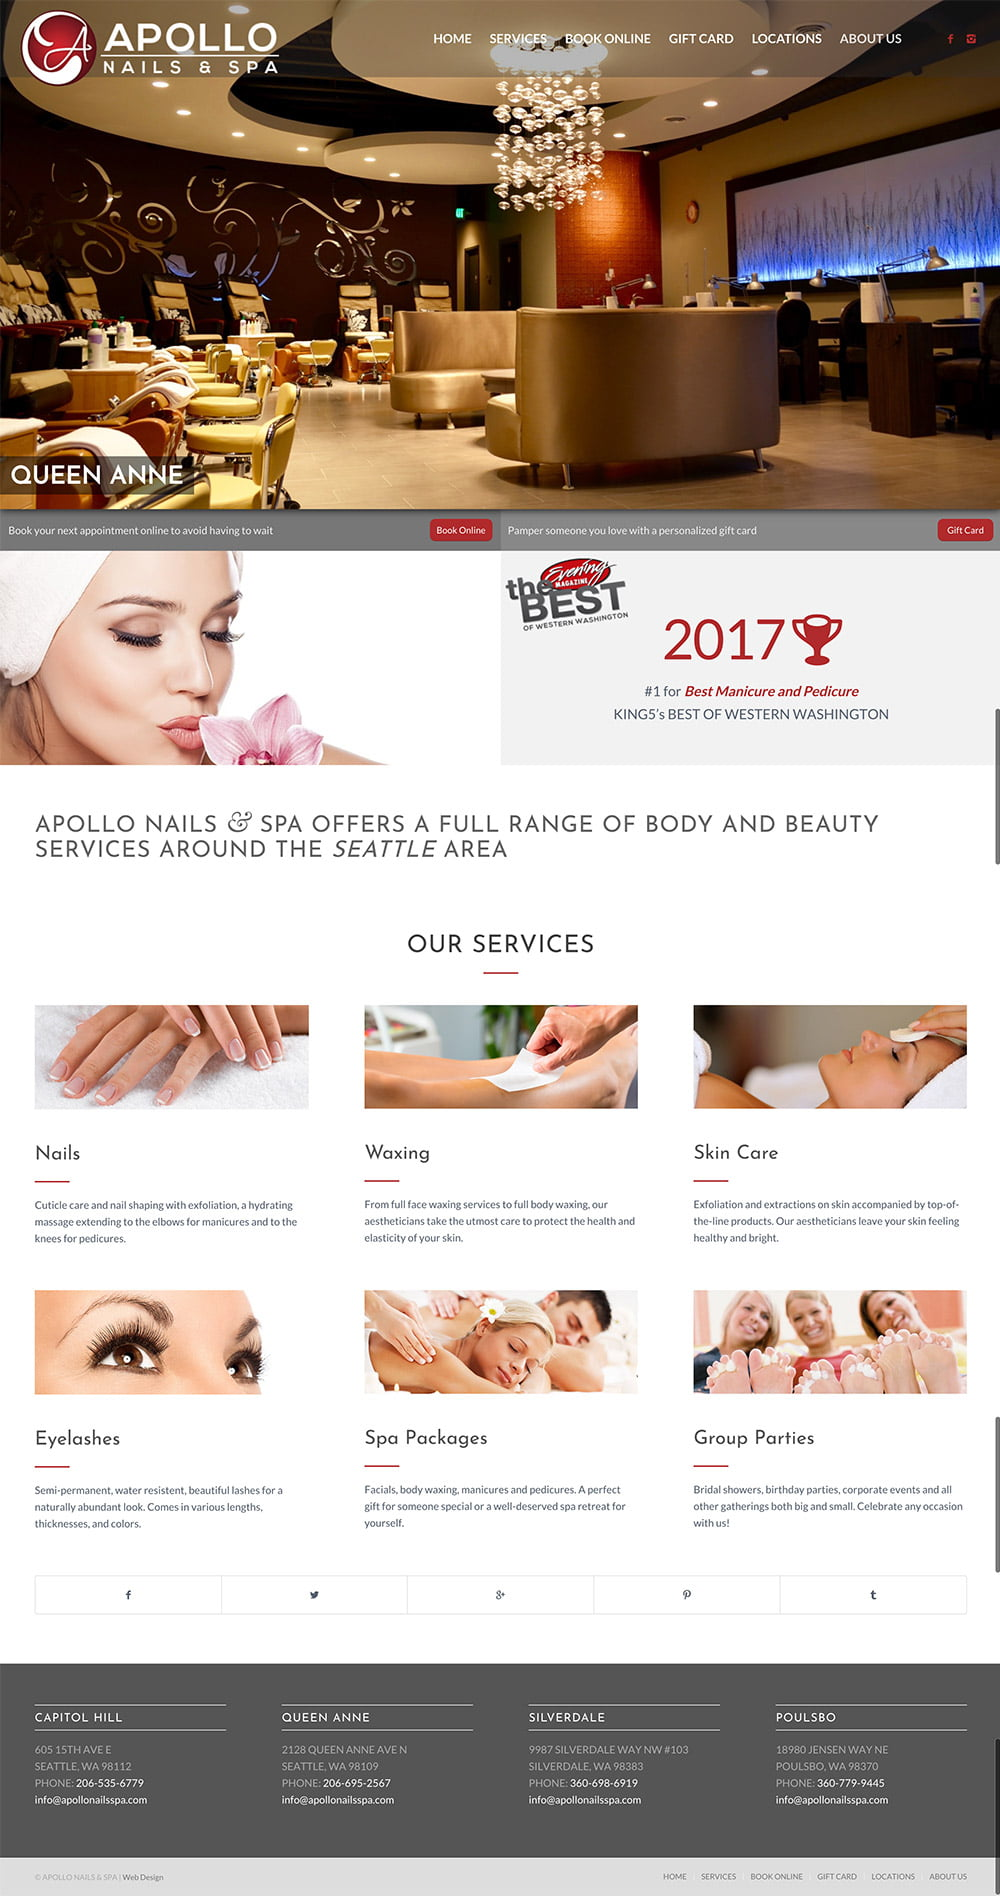 Apollo-Nails-and-Spa-1000